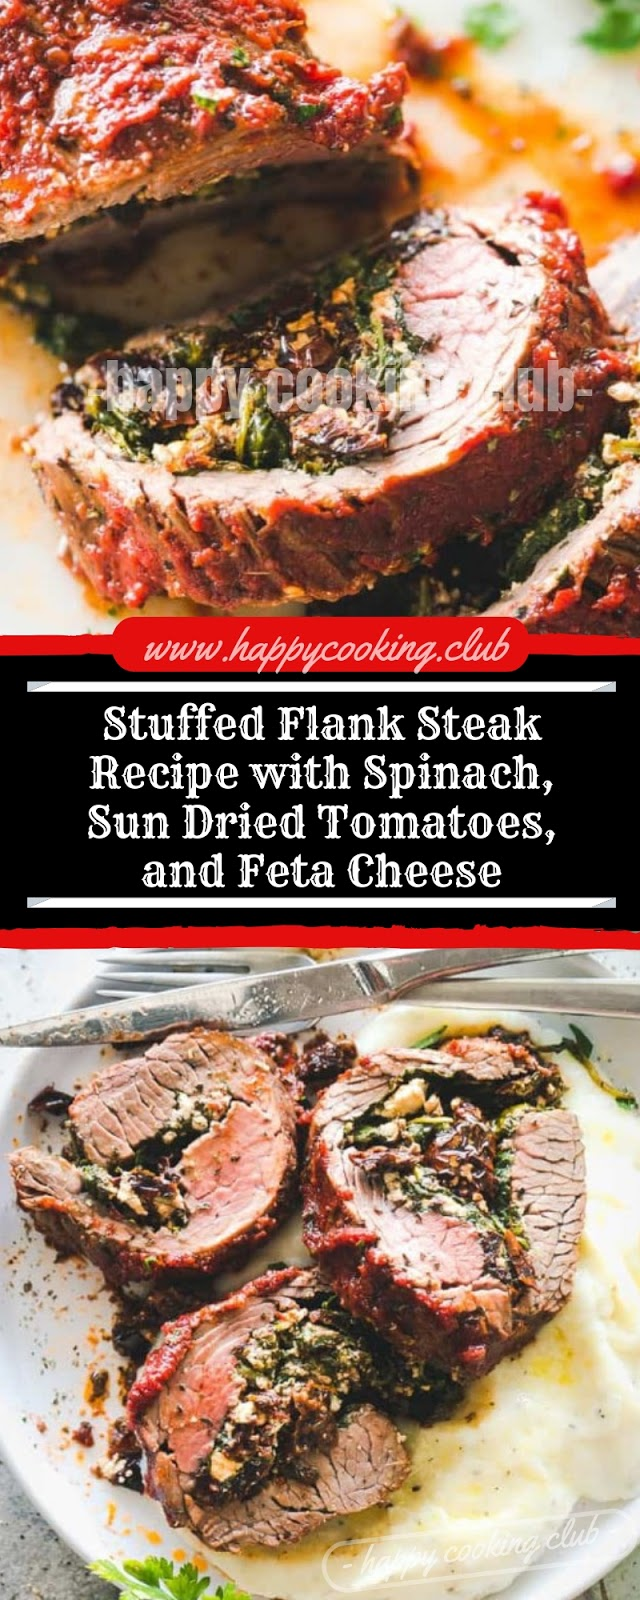 Stuffed Flank Steak Recipe with Spinach, Sun Dried Tomatoes, and Feta Cheese